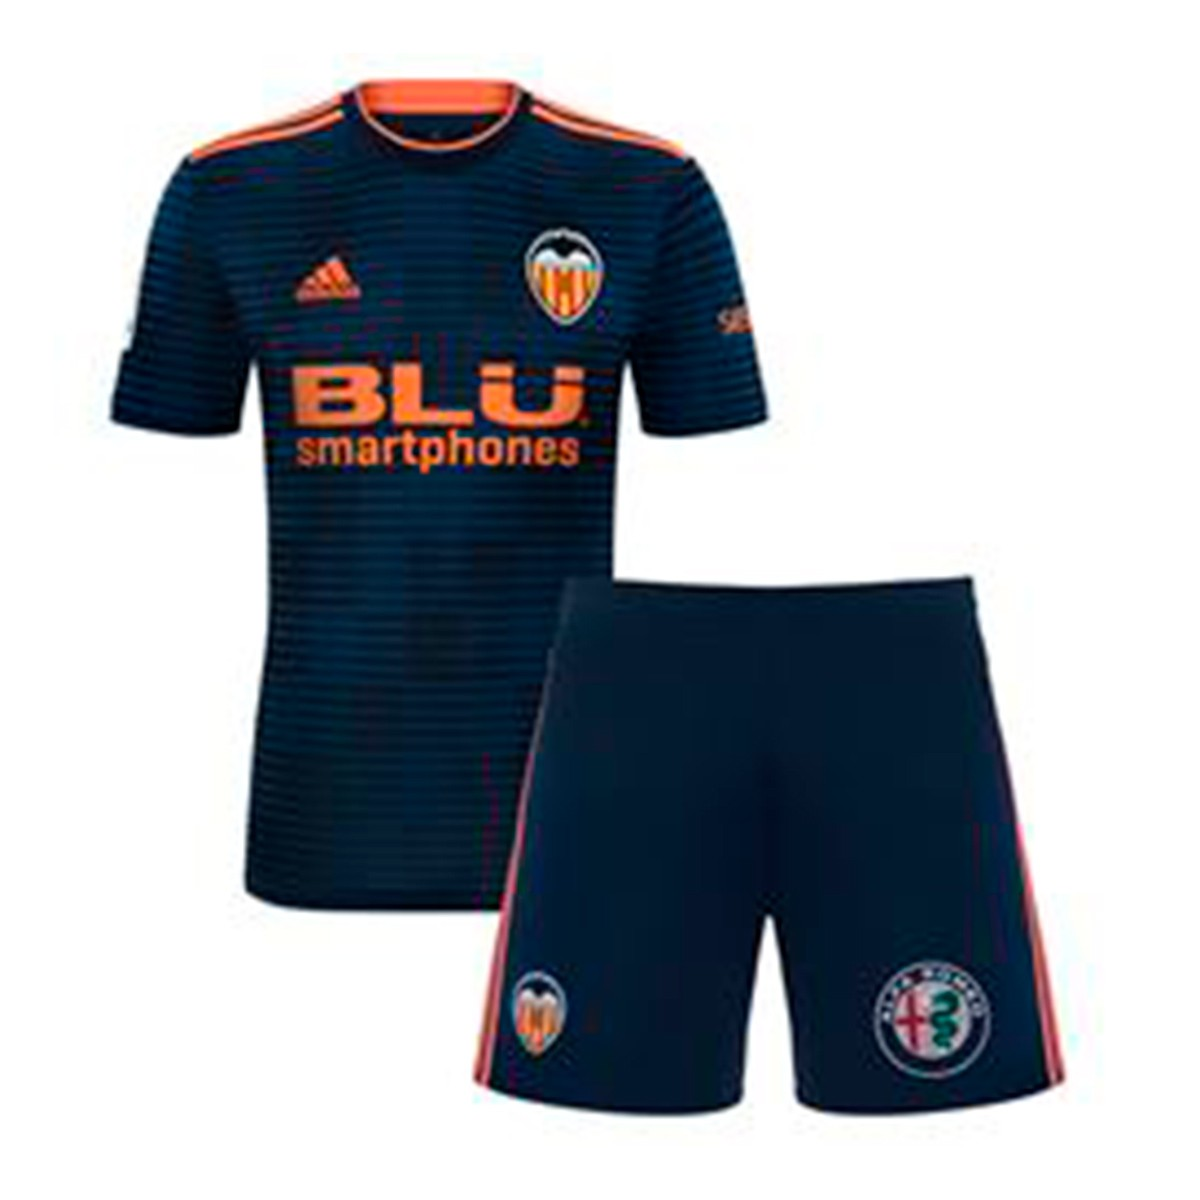 37a0befa5 Kit adidas Kids Valencia CF 2018-2019 Away Collegiate navy-Semi ...